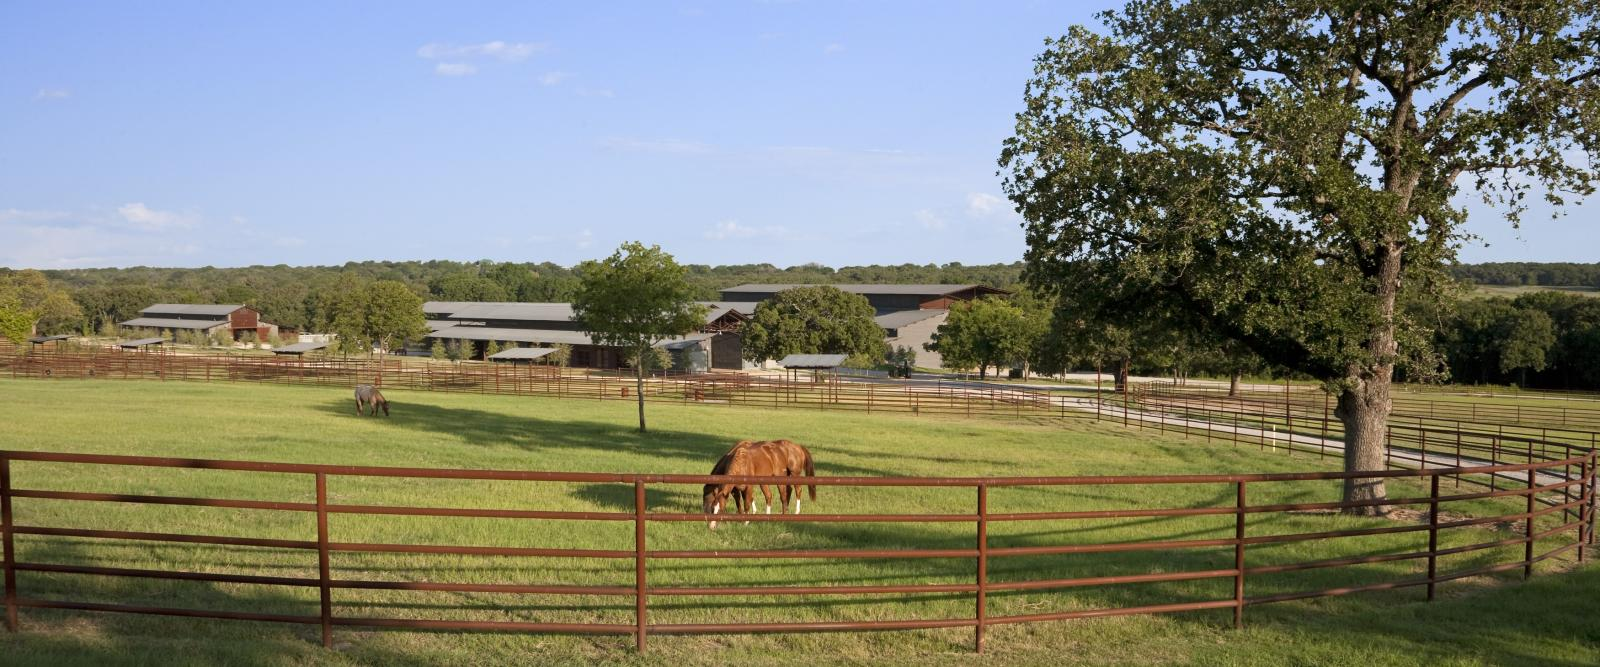 Cutting Horse Ranch | Lake Flato